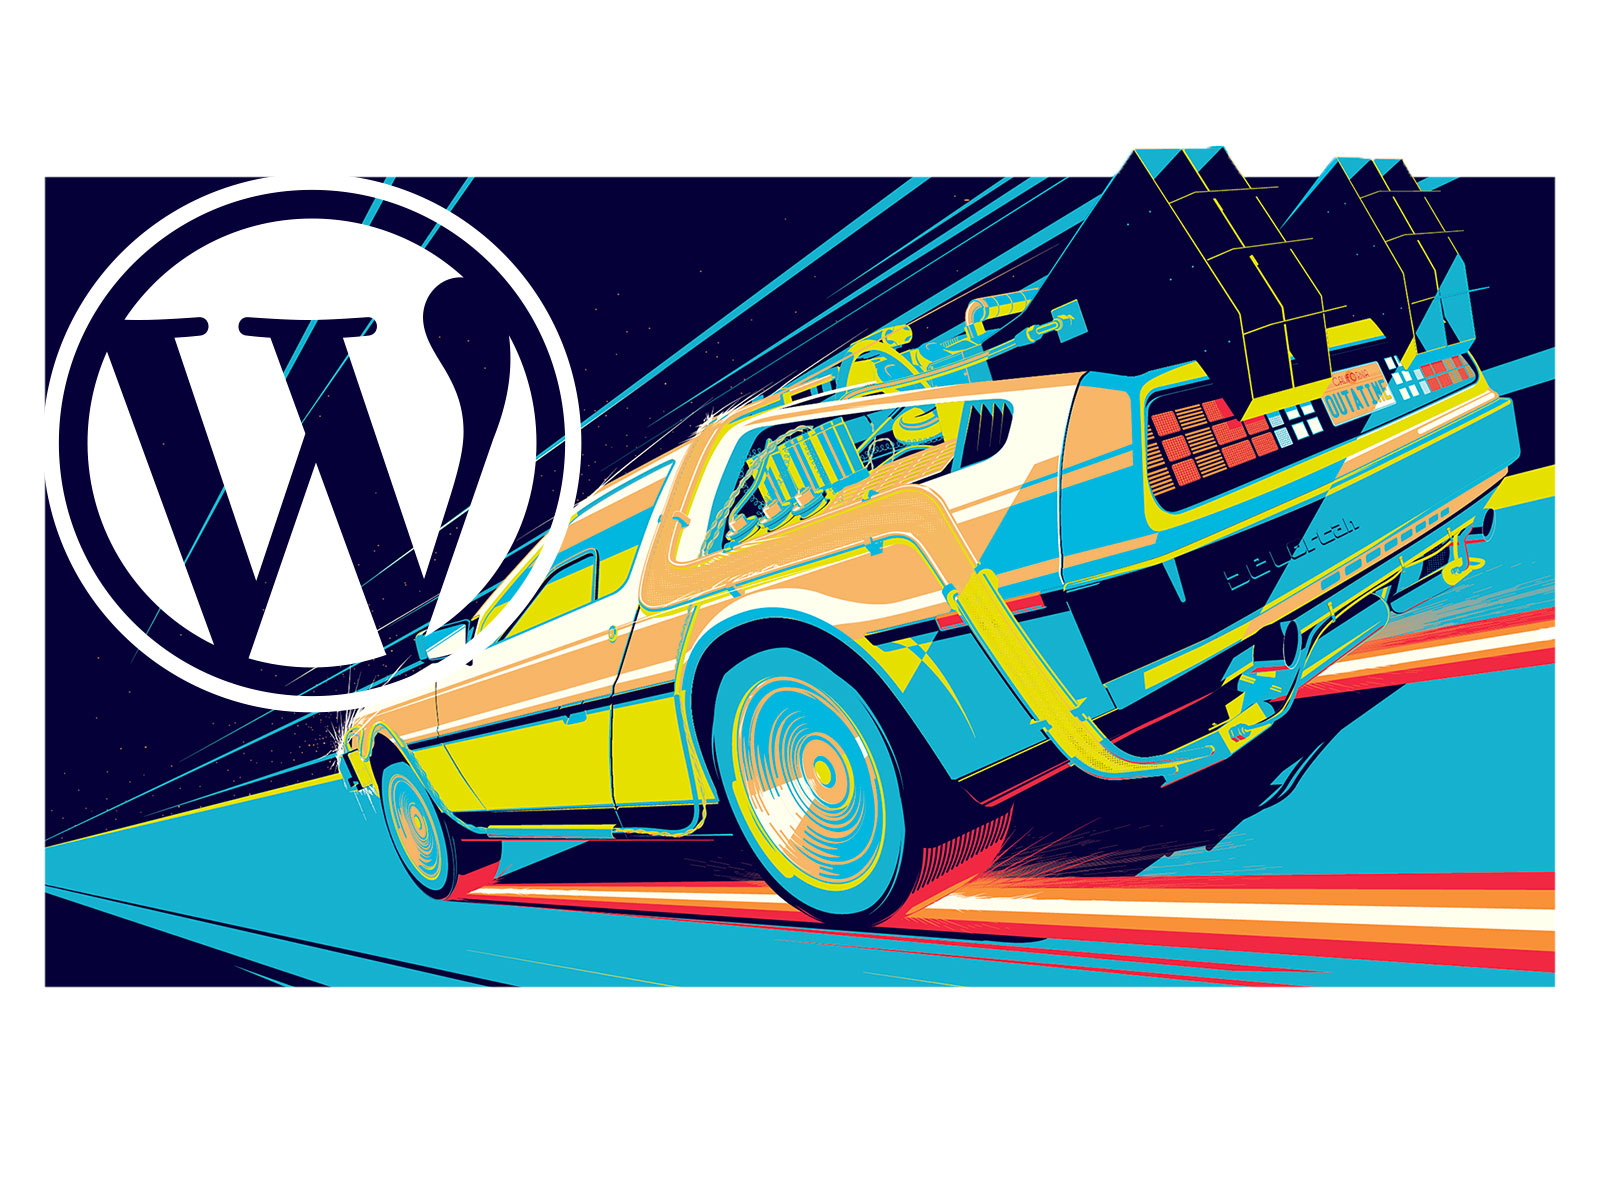 What Is the Demand of Wordpress Now and in the Future?